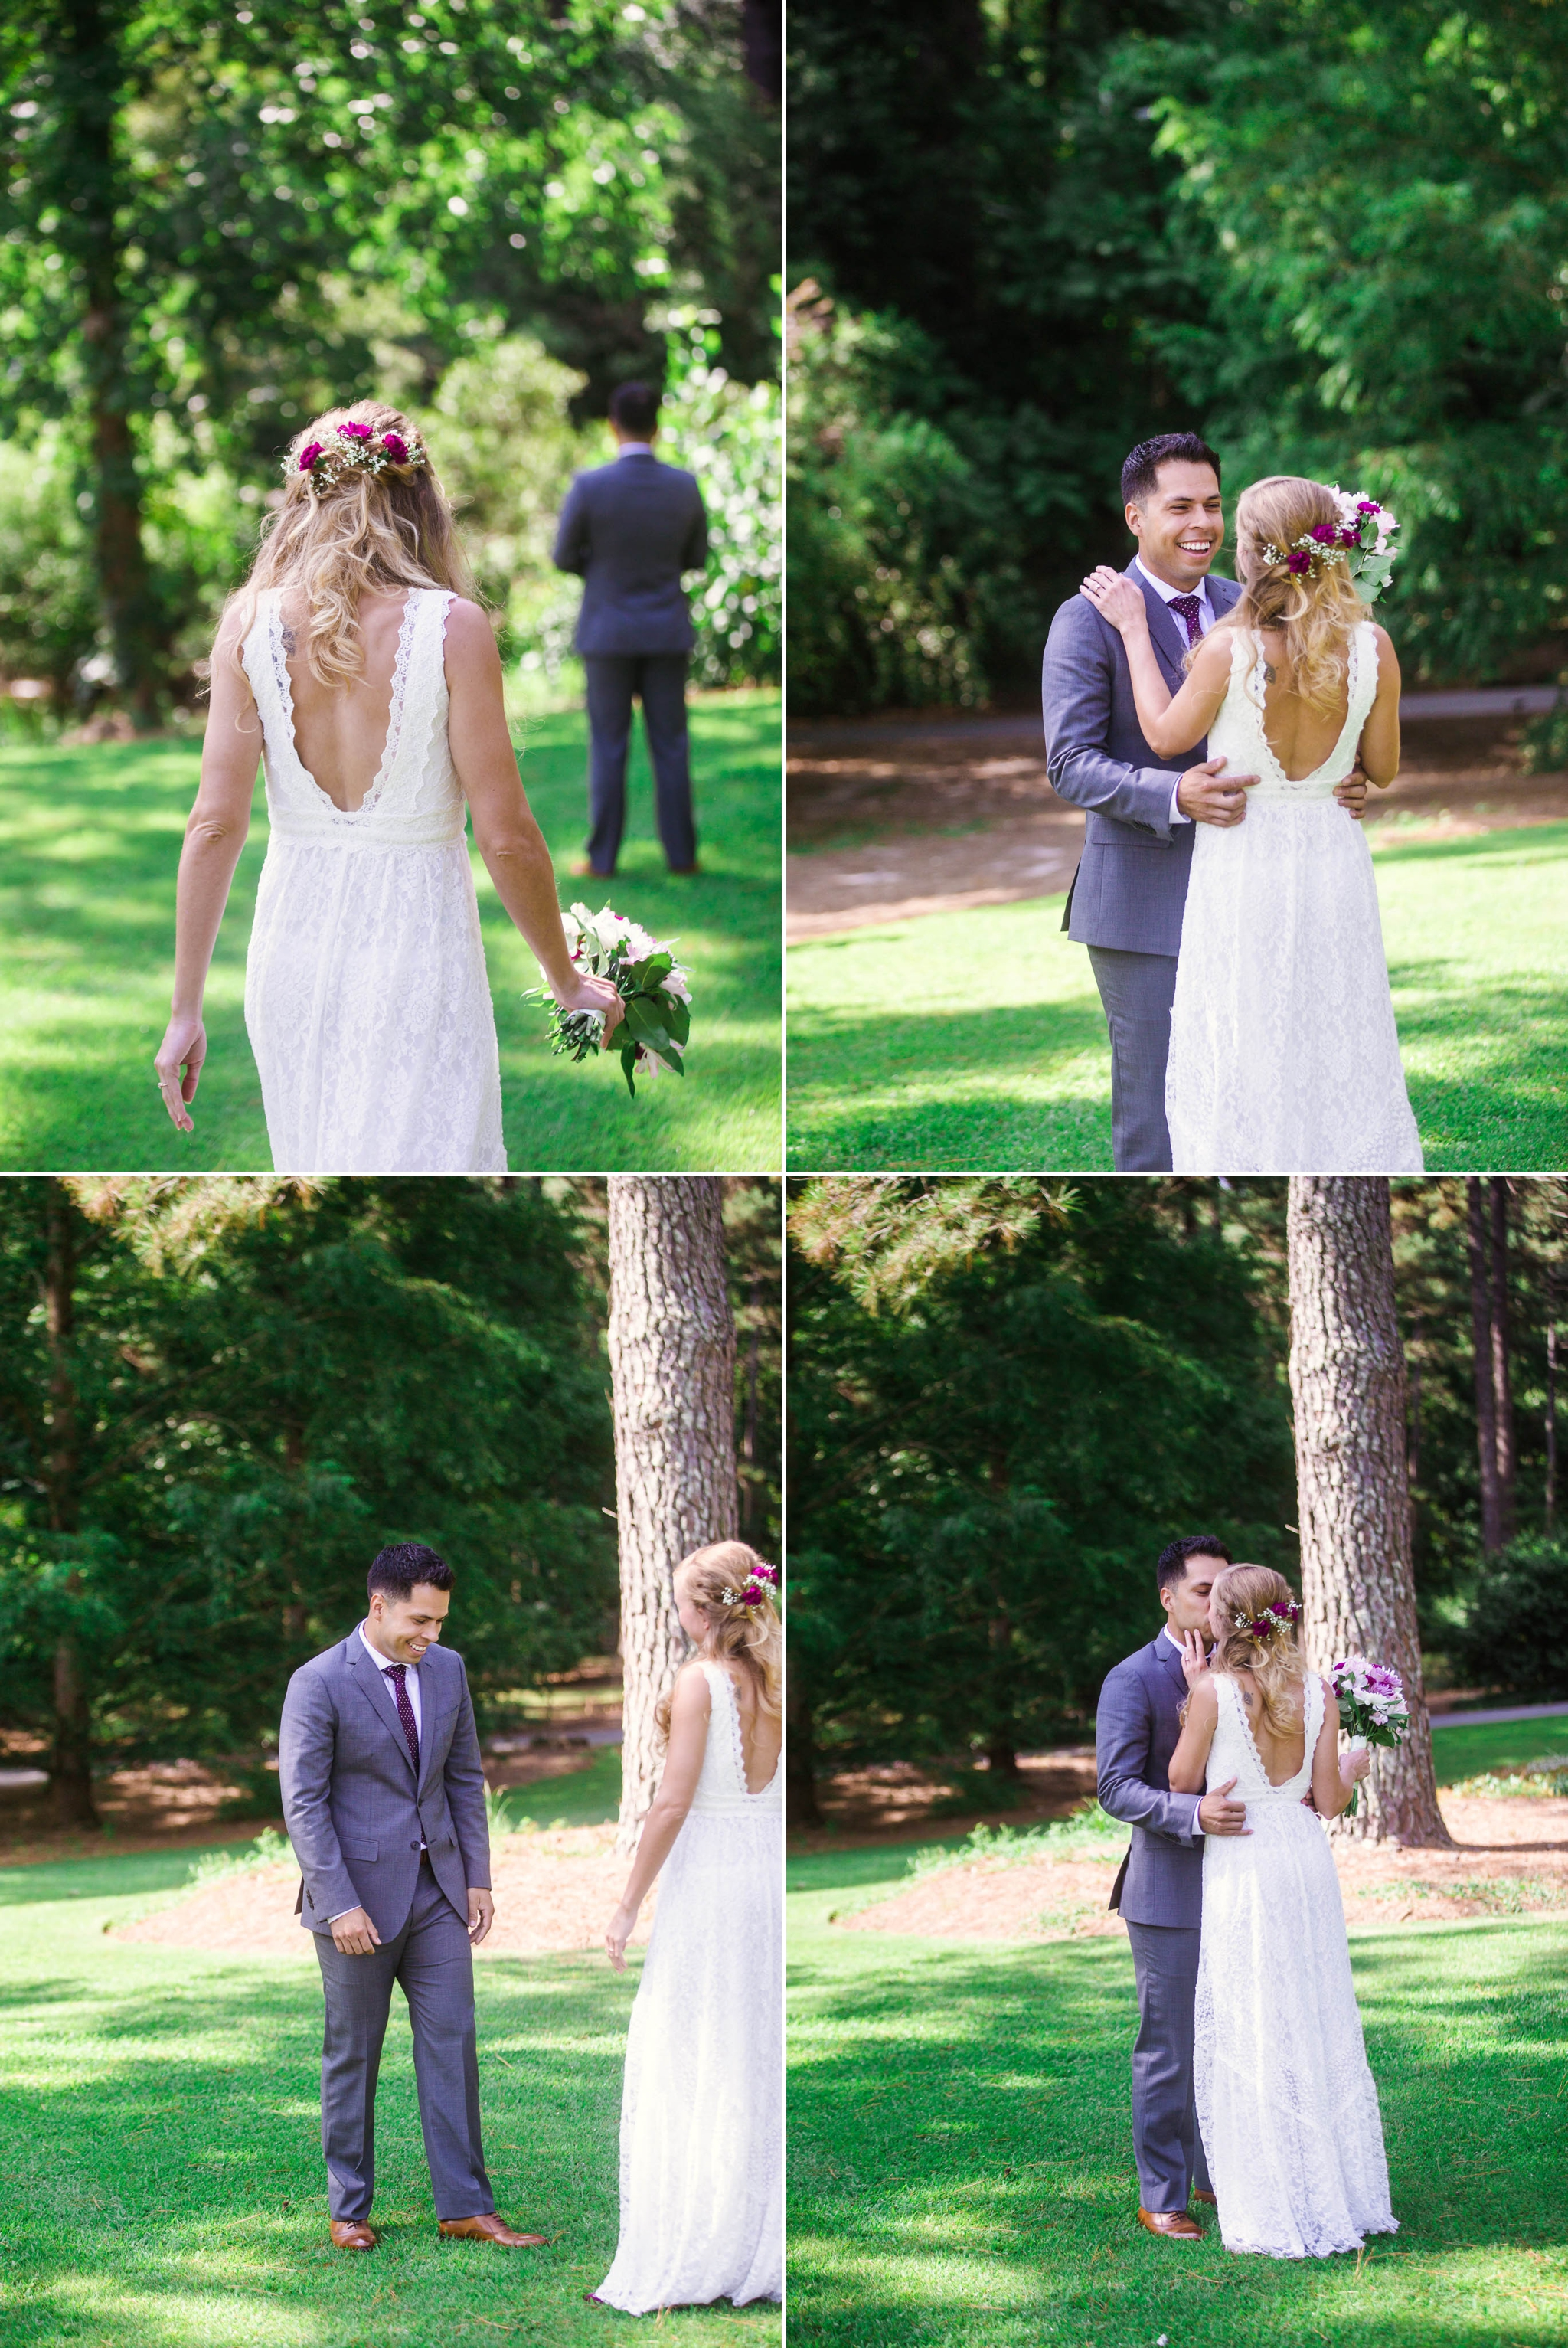 First Look between bride and groom - Kelly and Adam - Elopement at the Cape Fear Botanical Gardens - Fayetteville North Carolina Wedding Photographer